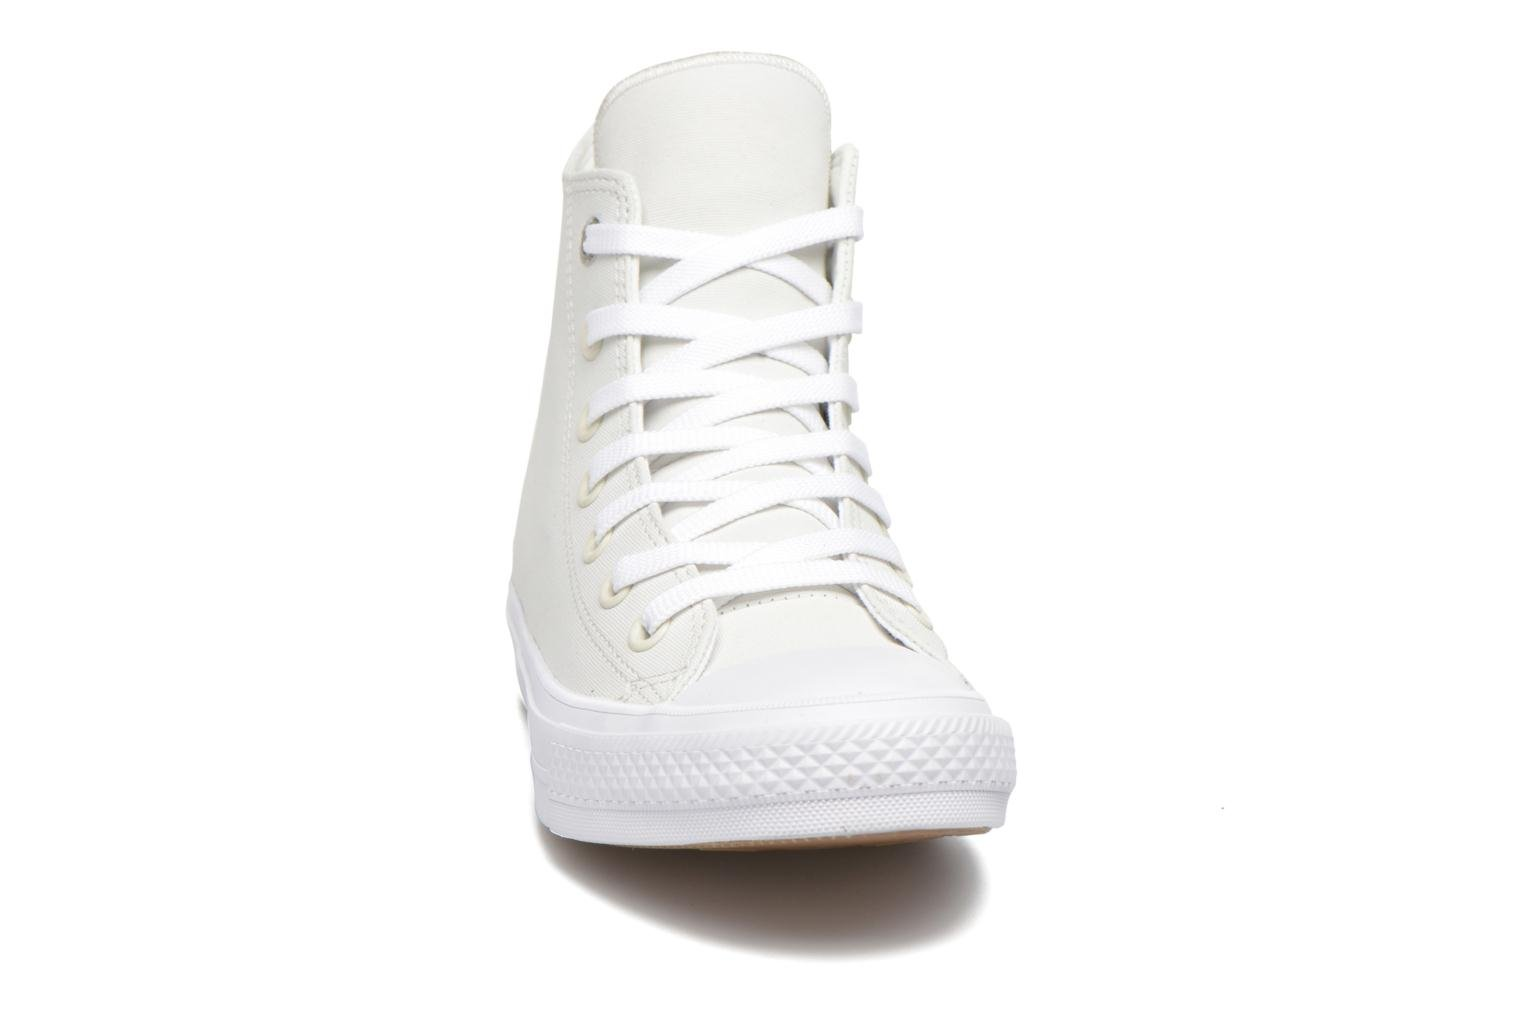 Chuck Taylor All Star II Hi W Buff/White/White